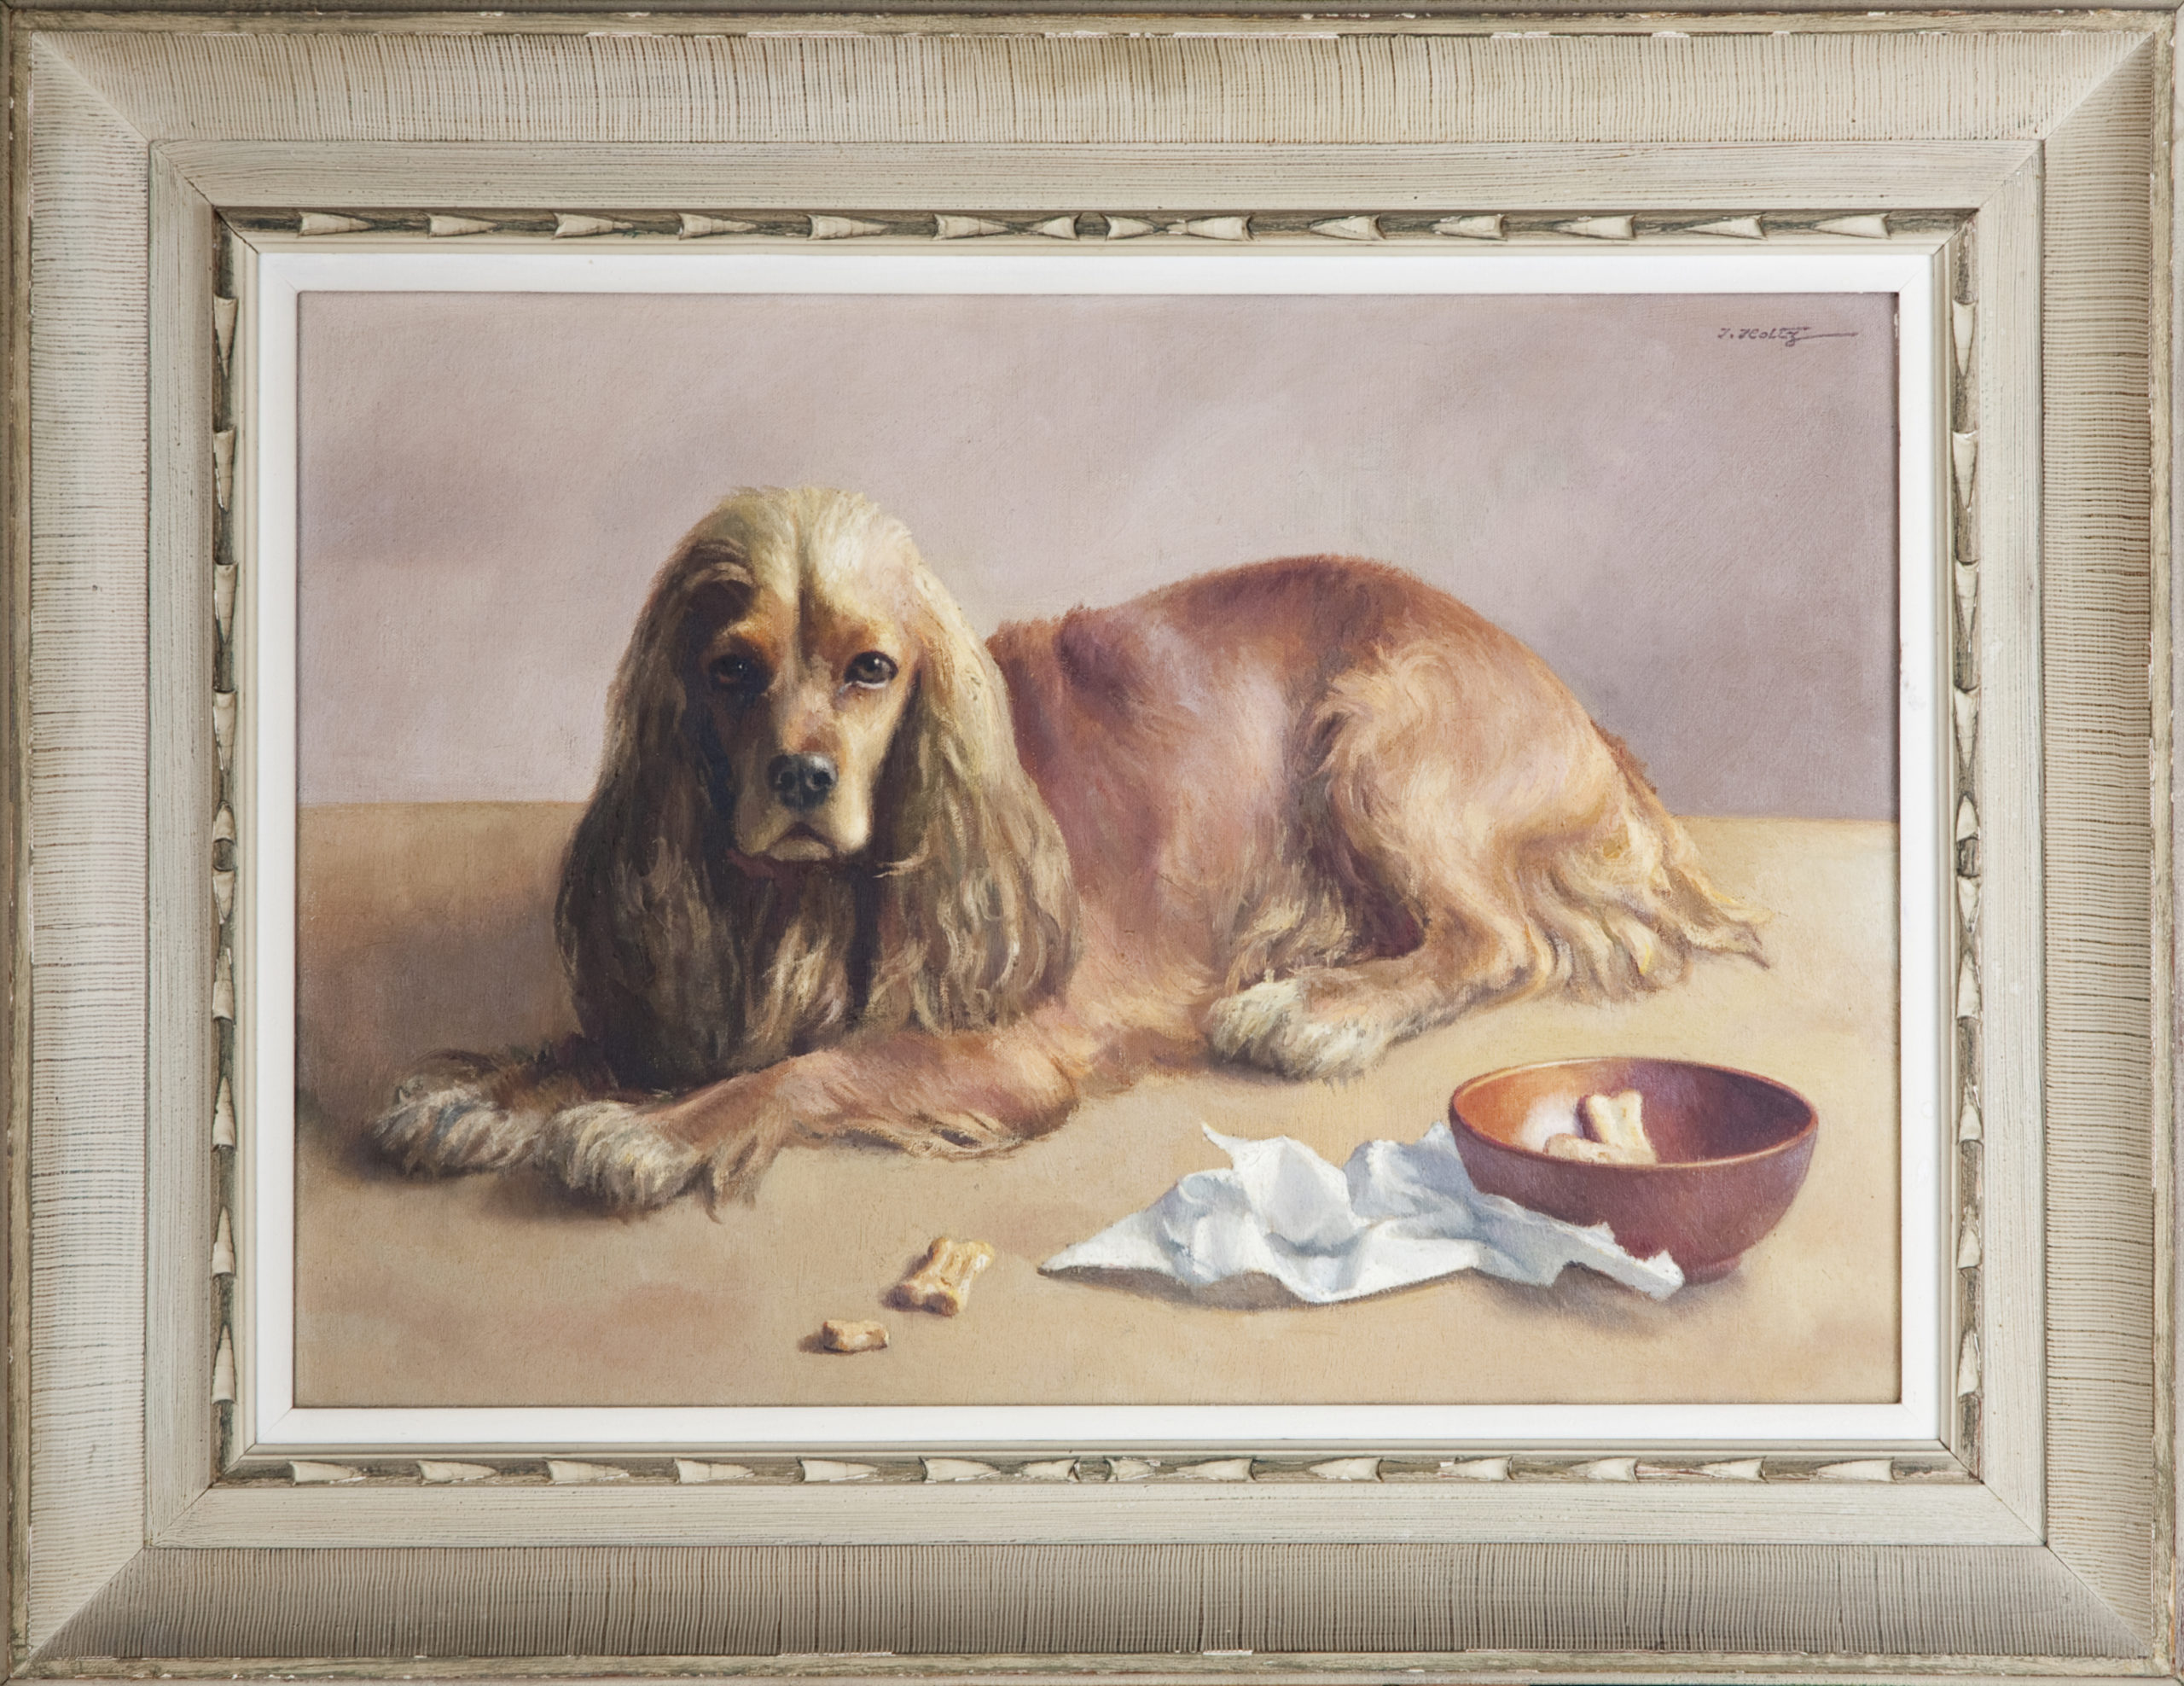 198 Duke cocker spaniel 1957 - 26 x 18 - Frame: 35 x 26.75 x 2.75